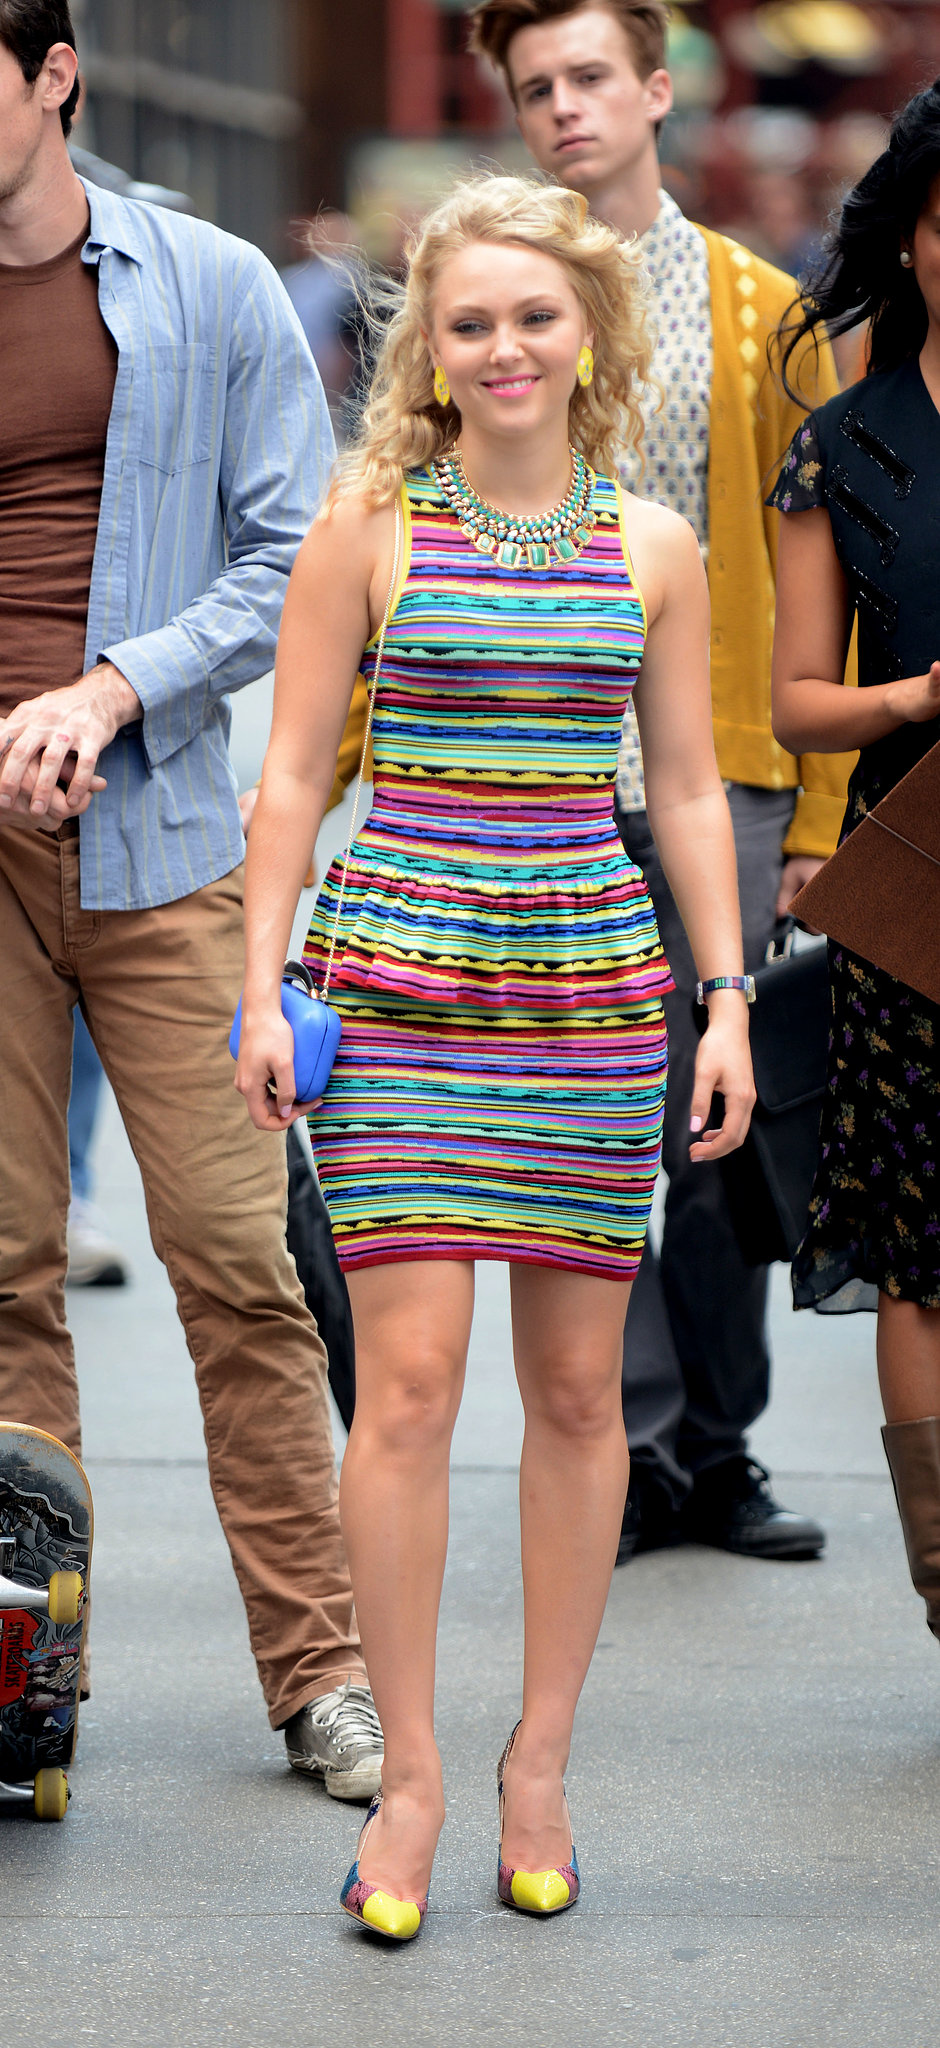 Carrie brightened the NYC street in a striped Torn by Ronny Kobo dress ($124, originally $248), featuring a sweet peplum detail and colorblock Aldo pumps.